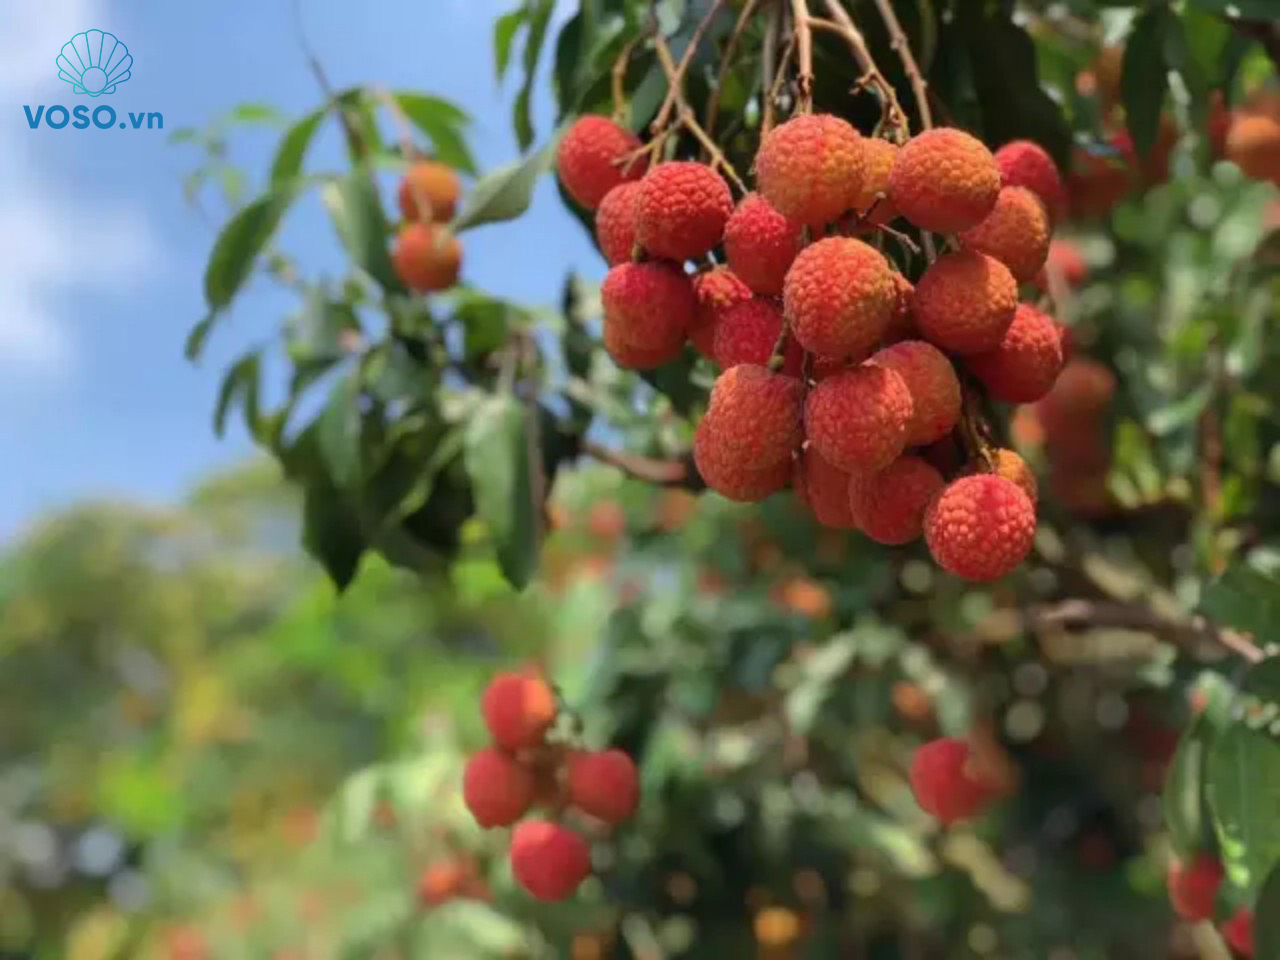 Bac Giang province's lychee sold online amidst Covid-19